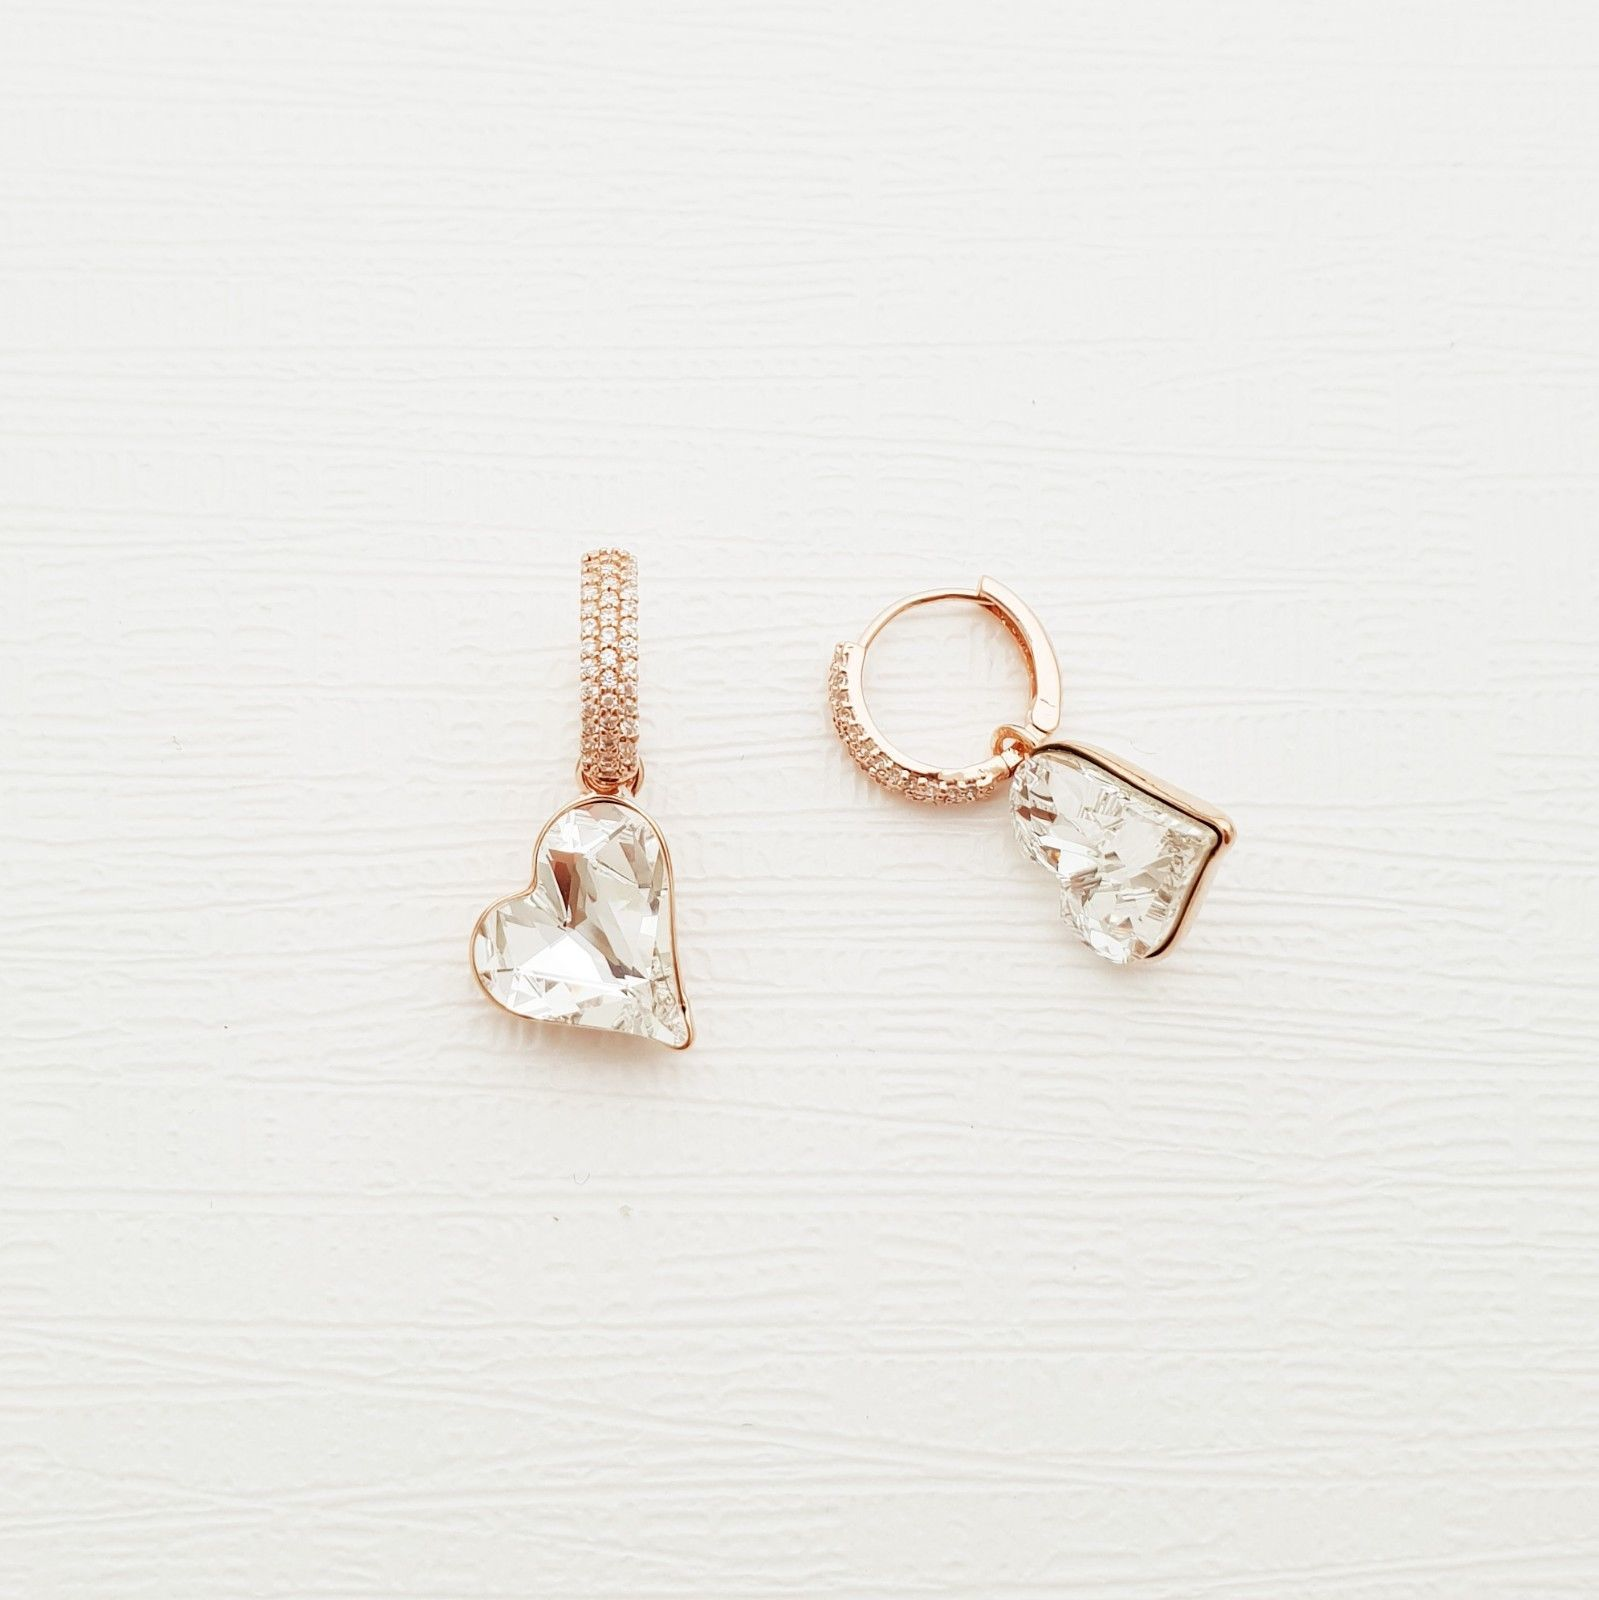 Heart Made With Swarovski Crystal Laverback Dangle Earrings Cubic Zirconia E215 image 7